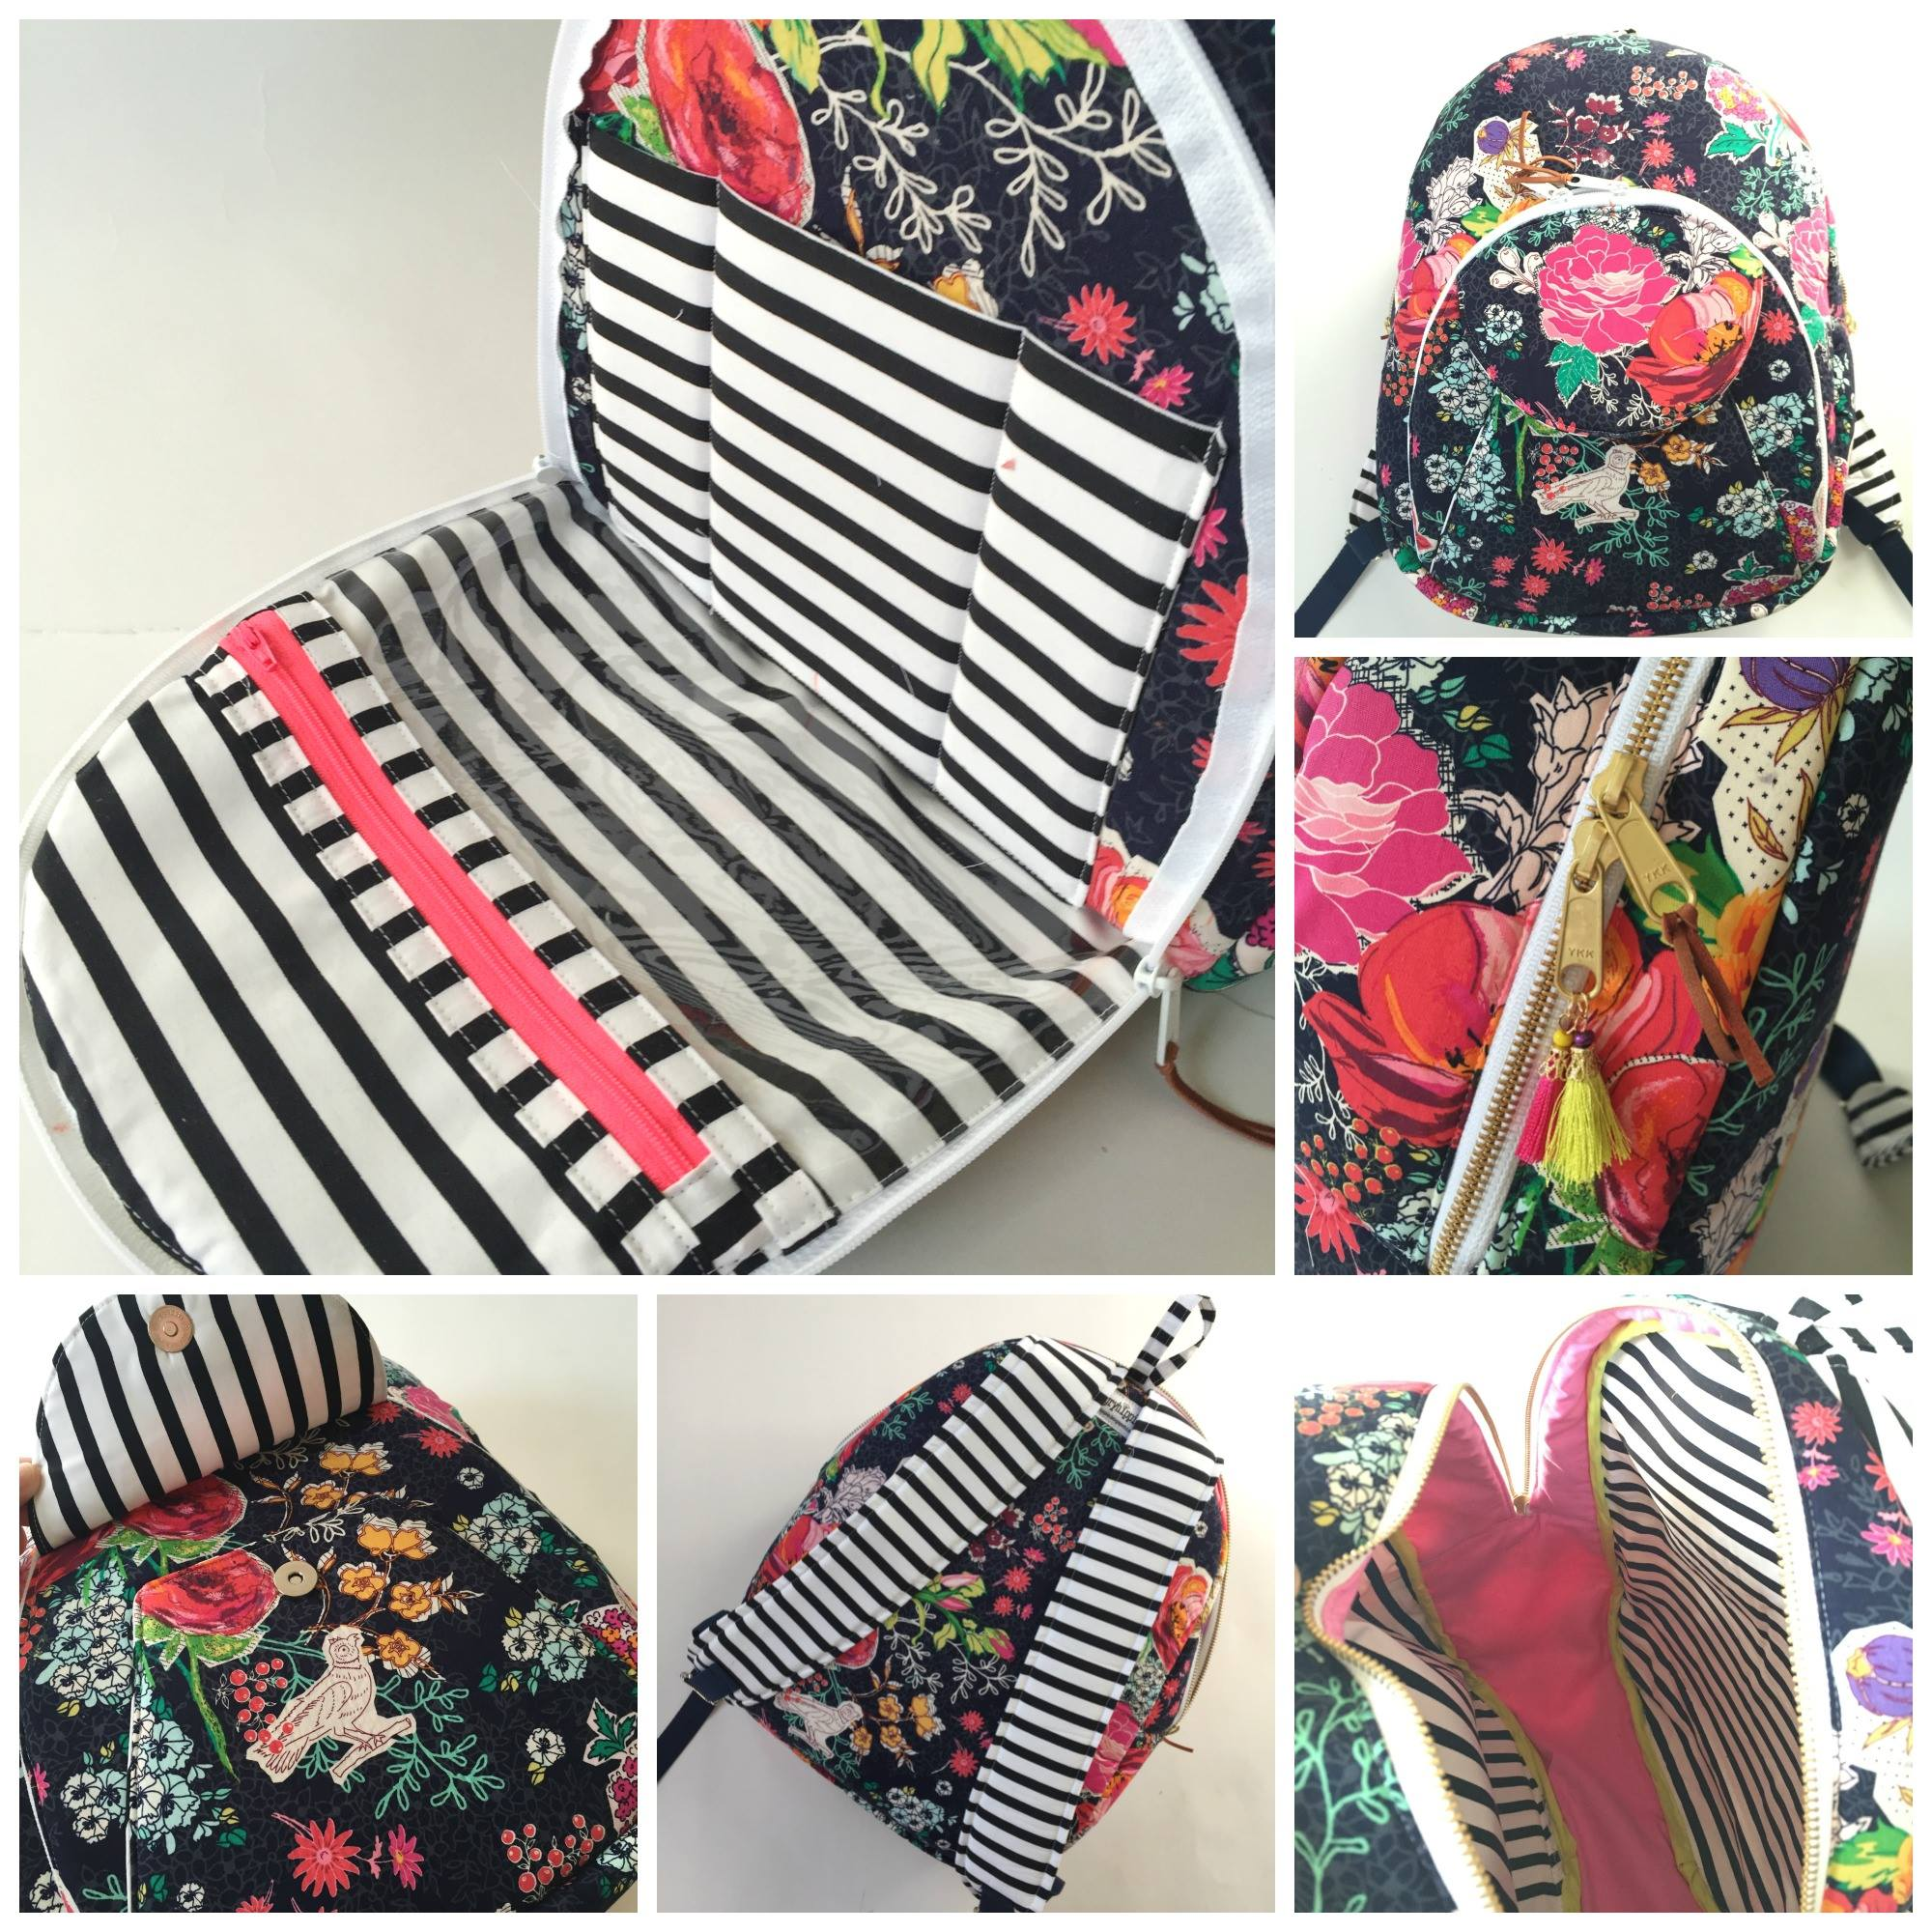 Sew Sweetness Cumberland Backpack, sewn by Natalie of Hungry Hippie